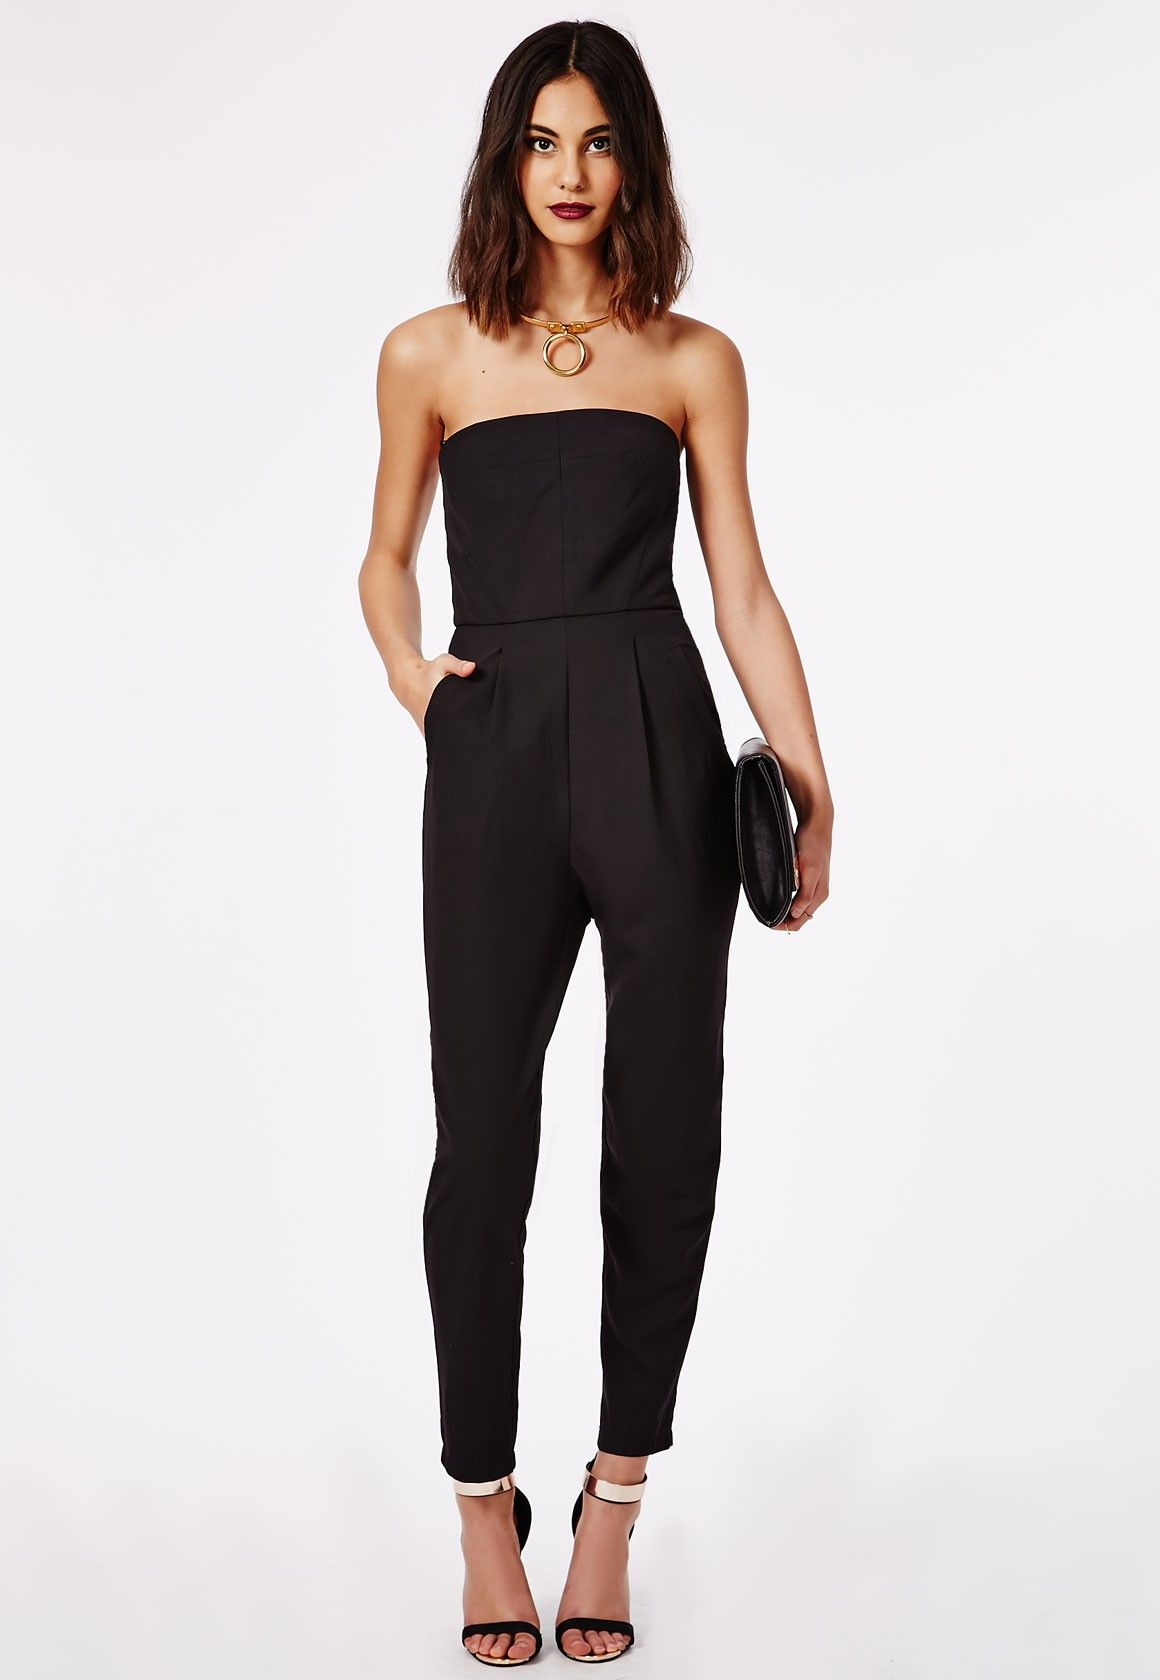 17 Best images about Jumpsuits on Pinterest | Catsuit, Fashion ...